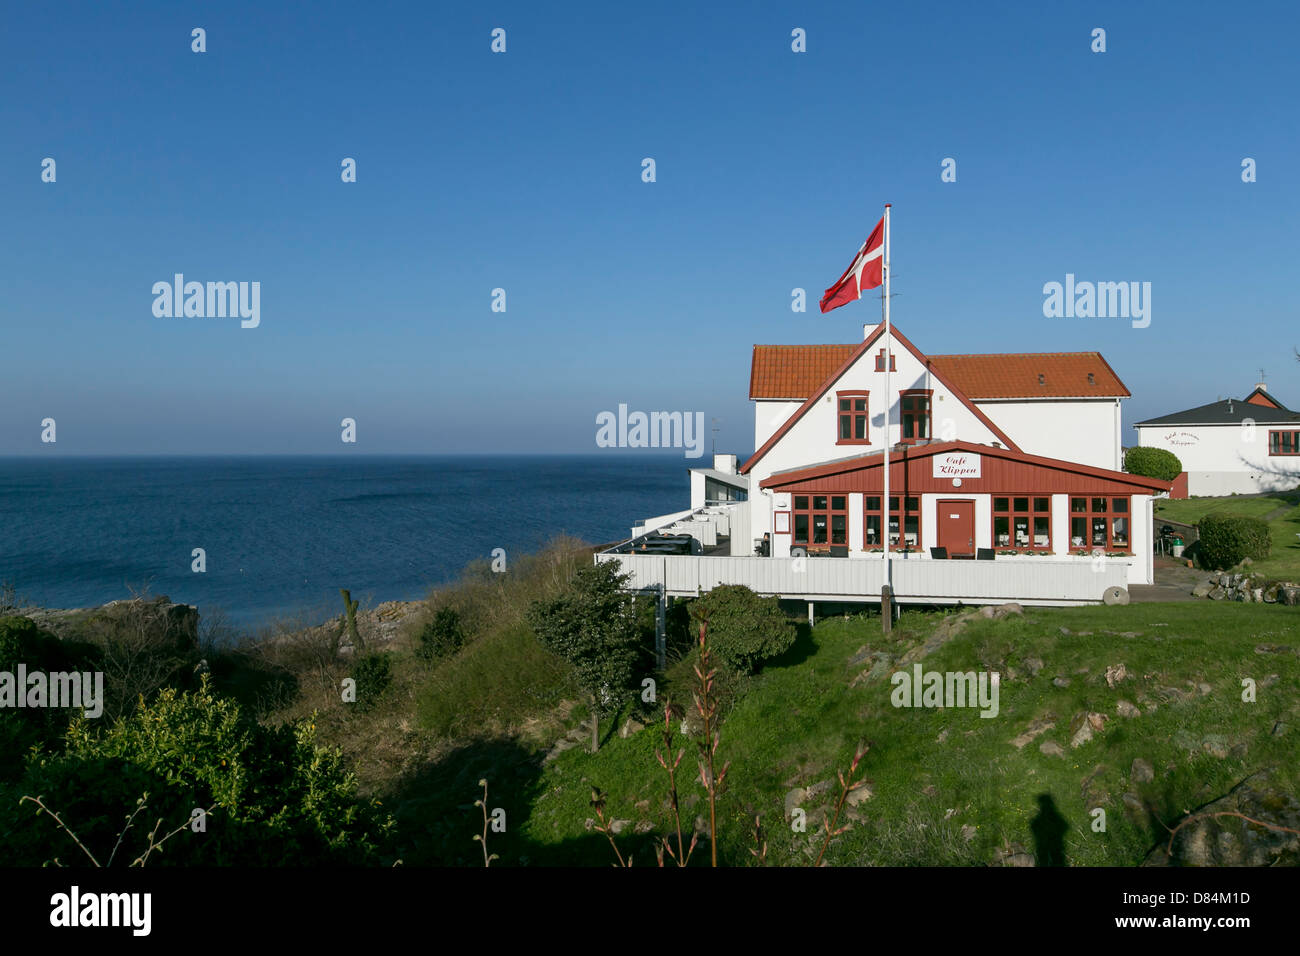 Cafe Klippen on the island of Bornholm in the Baltic Sea, Denmark Stock Photo